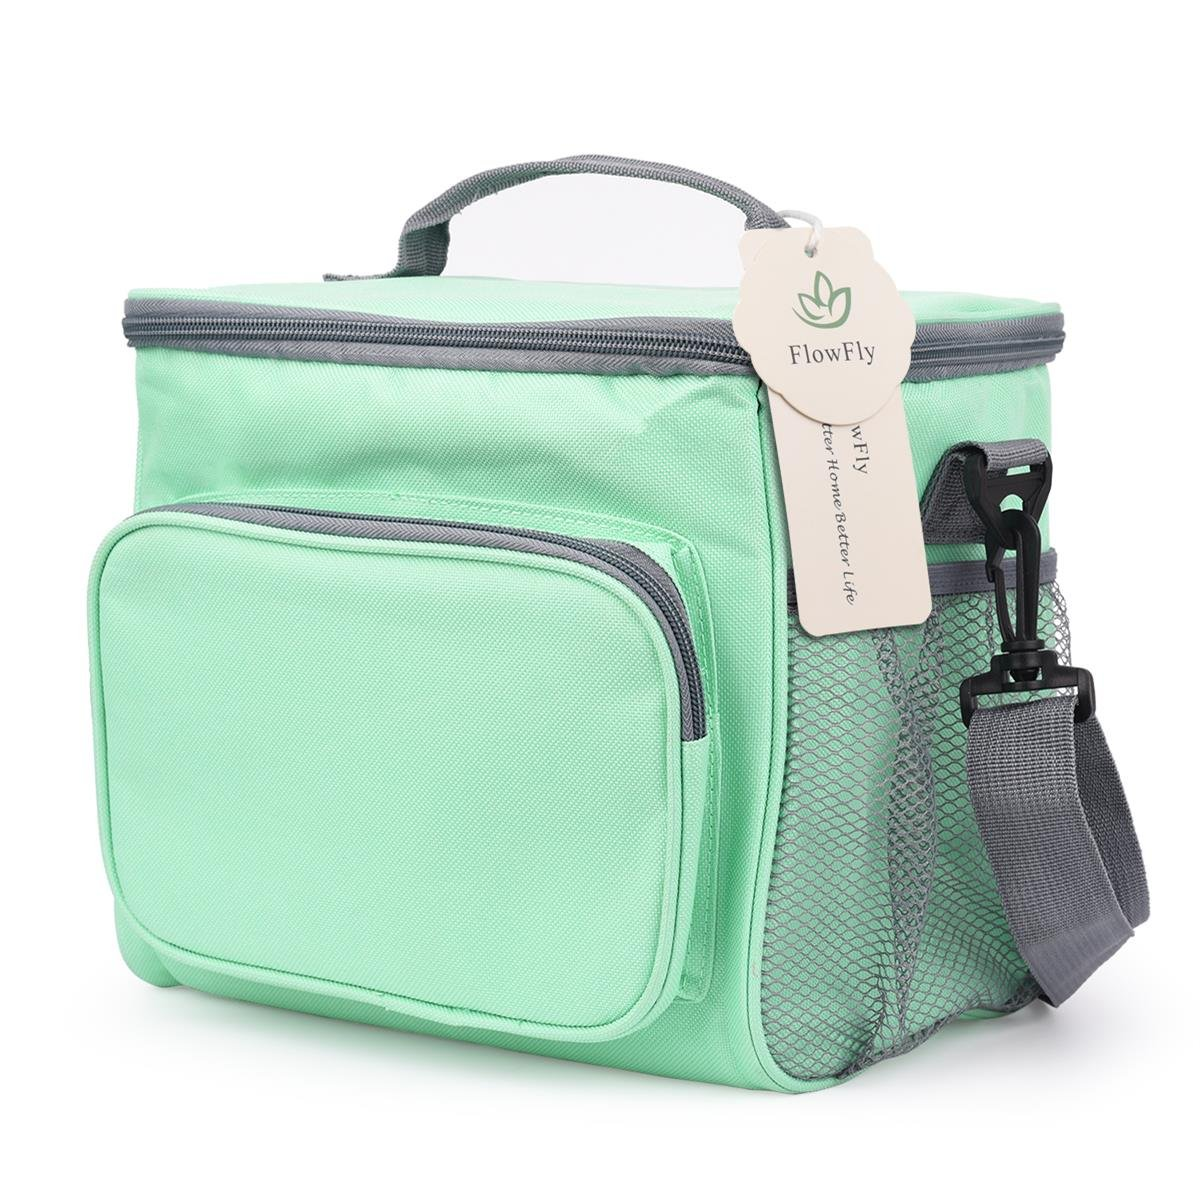 FlowFly Insulated Lunch Bag Adult Thermal Large Lunch Box Men, Women Adjustable Strap,Front Pocket Dual Mesh Side Pockets Green Flowish Inc. FW-CA-LB001-G01